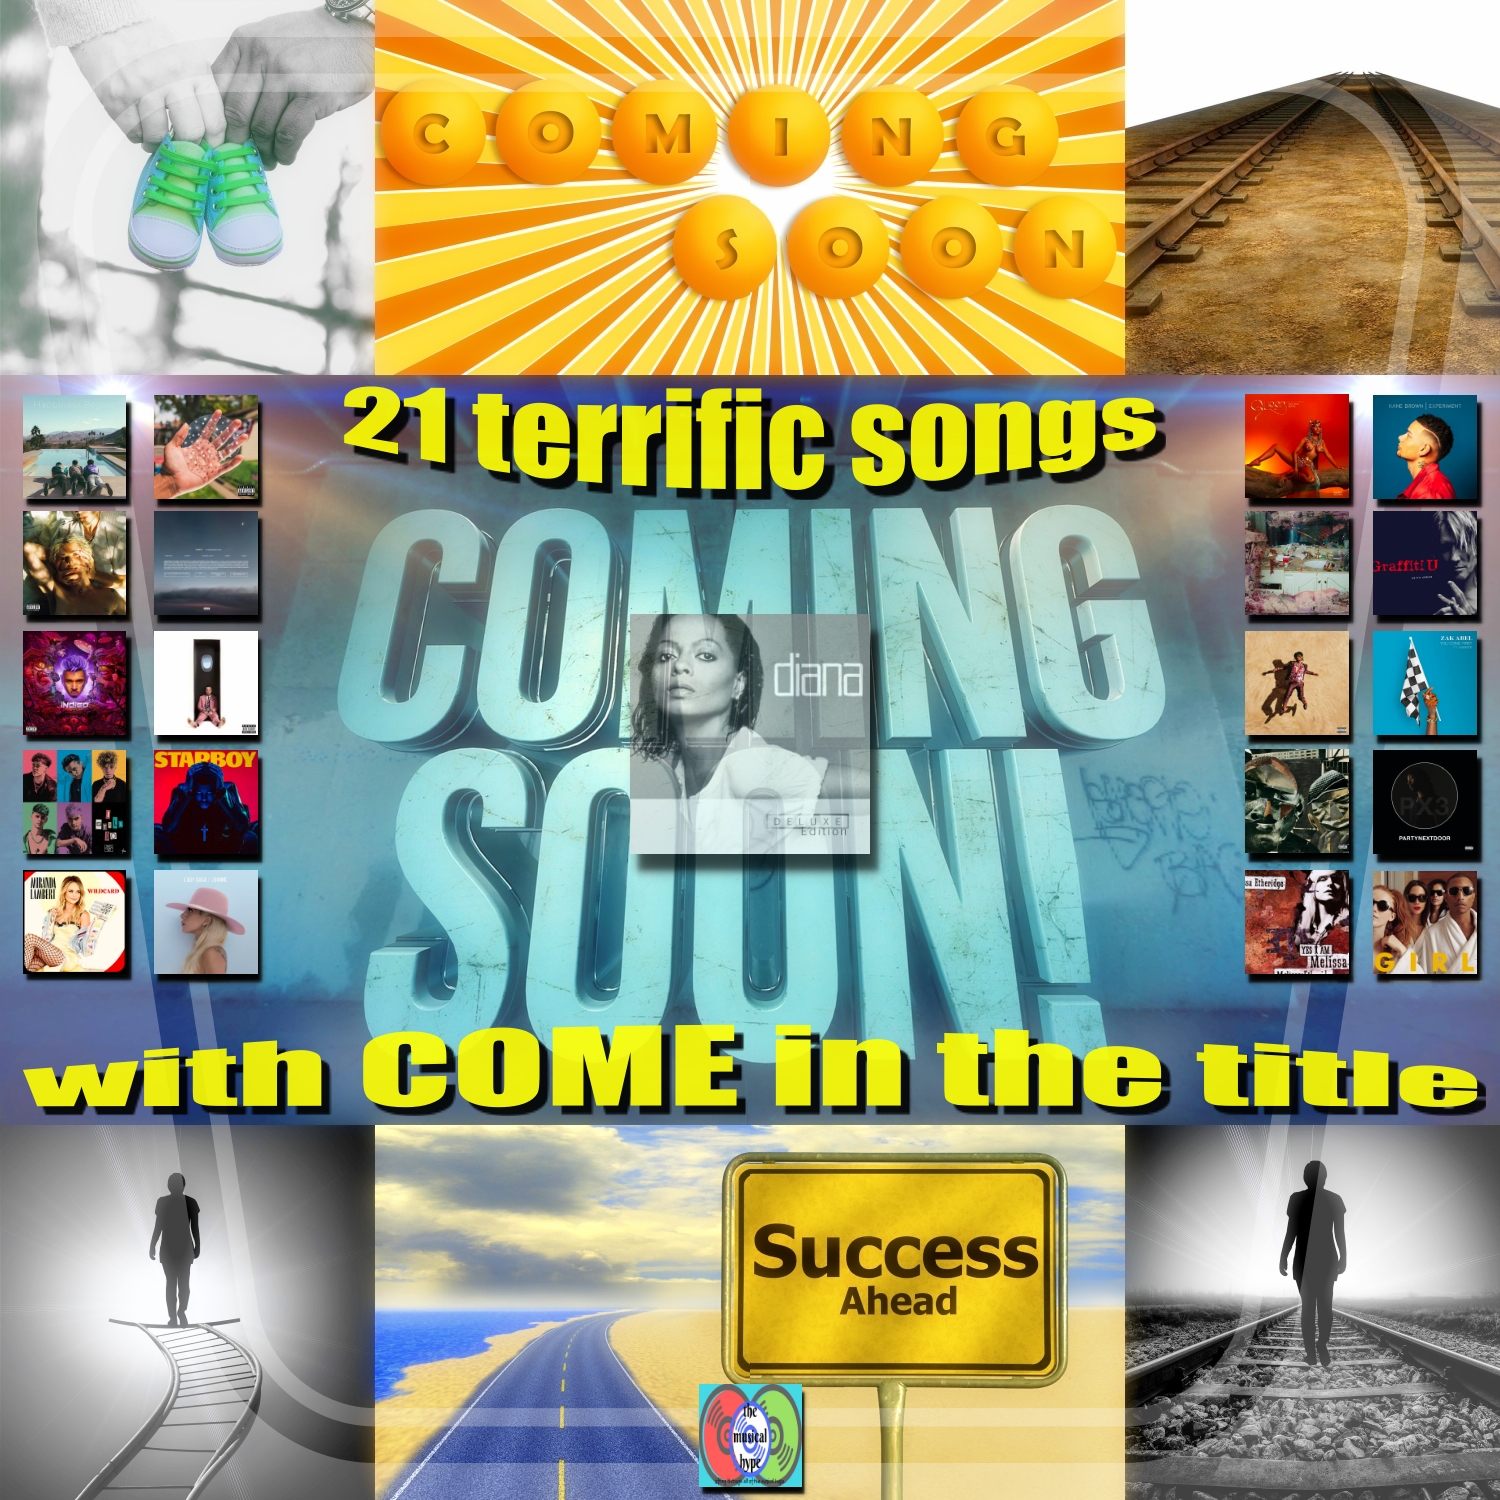 21 Terrific Songs with 'Come' in the Title | Playlist